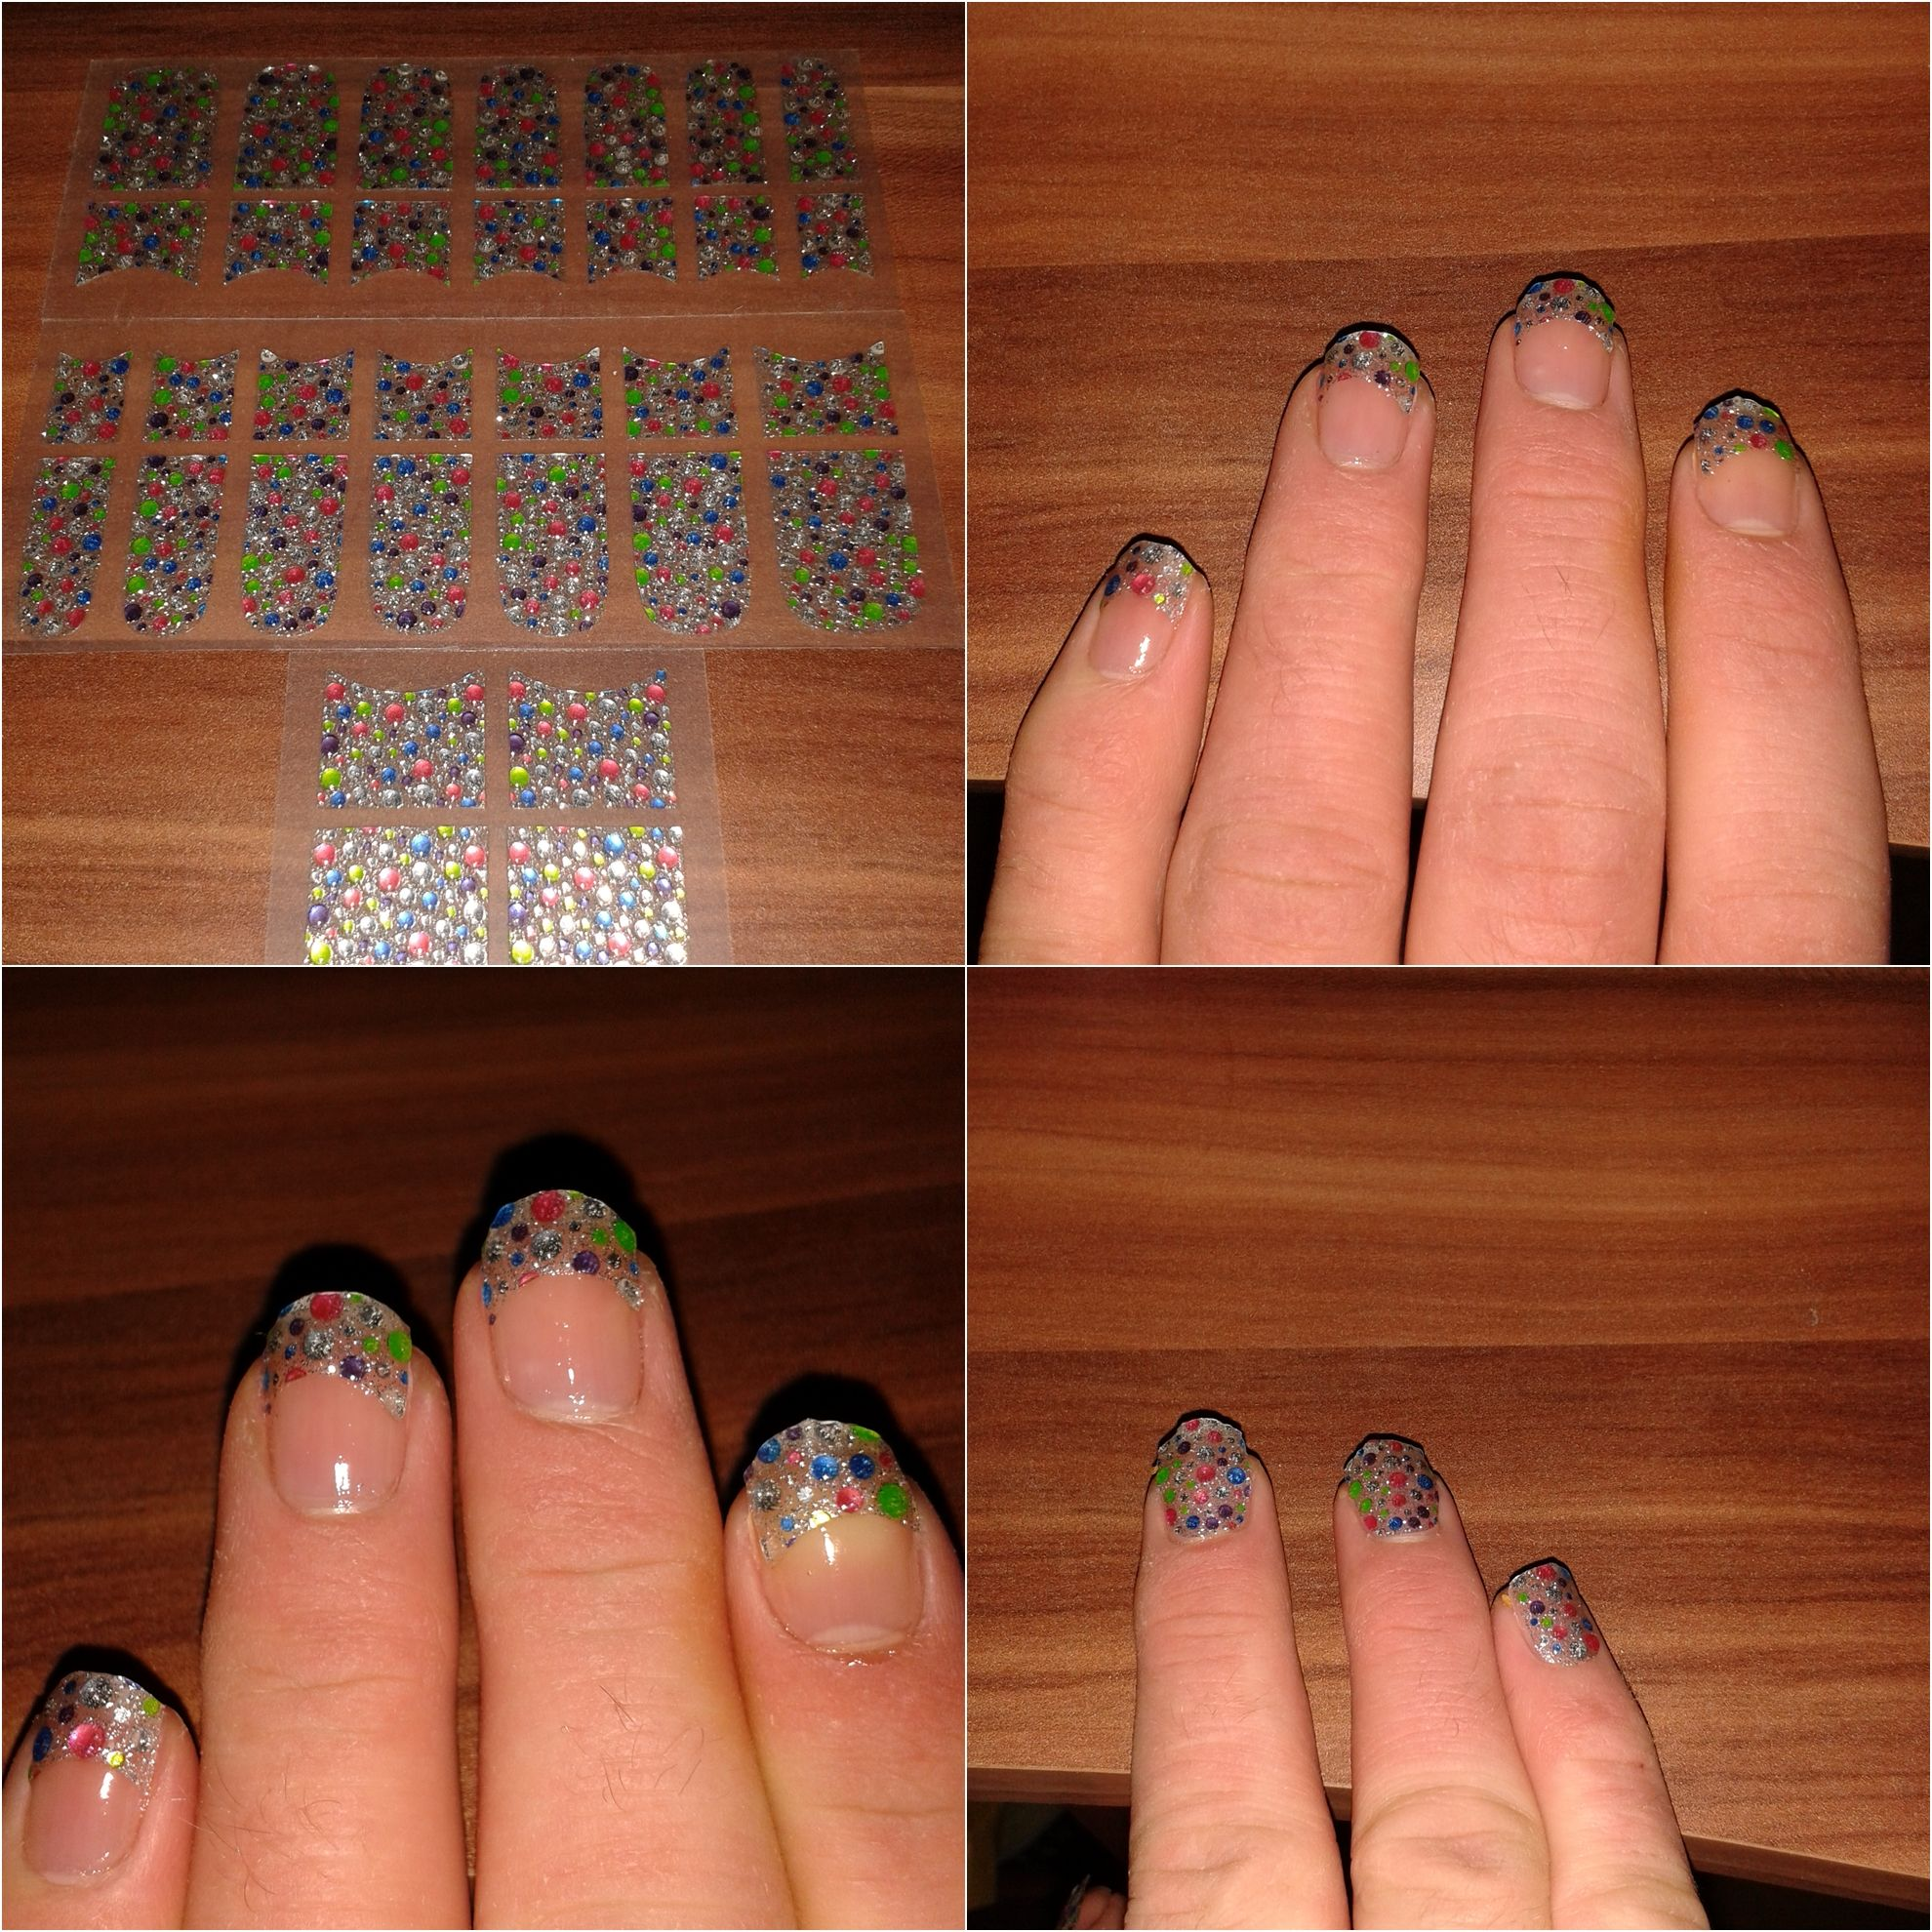 Love it! ♥ #BROADWAYNAILS Stick-On Strips ab dem 14.05.2014 bei #Kaufland. UVP: 4,99€. Testbericht: http://www.gooloo.de/2014/05/broadway-nails-stick-on-strips-amazing.html